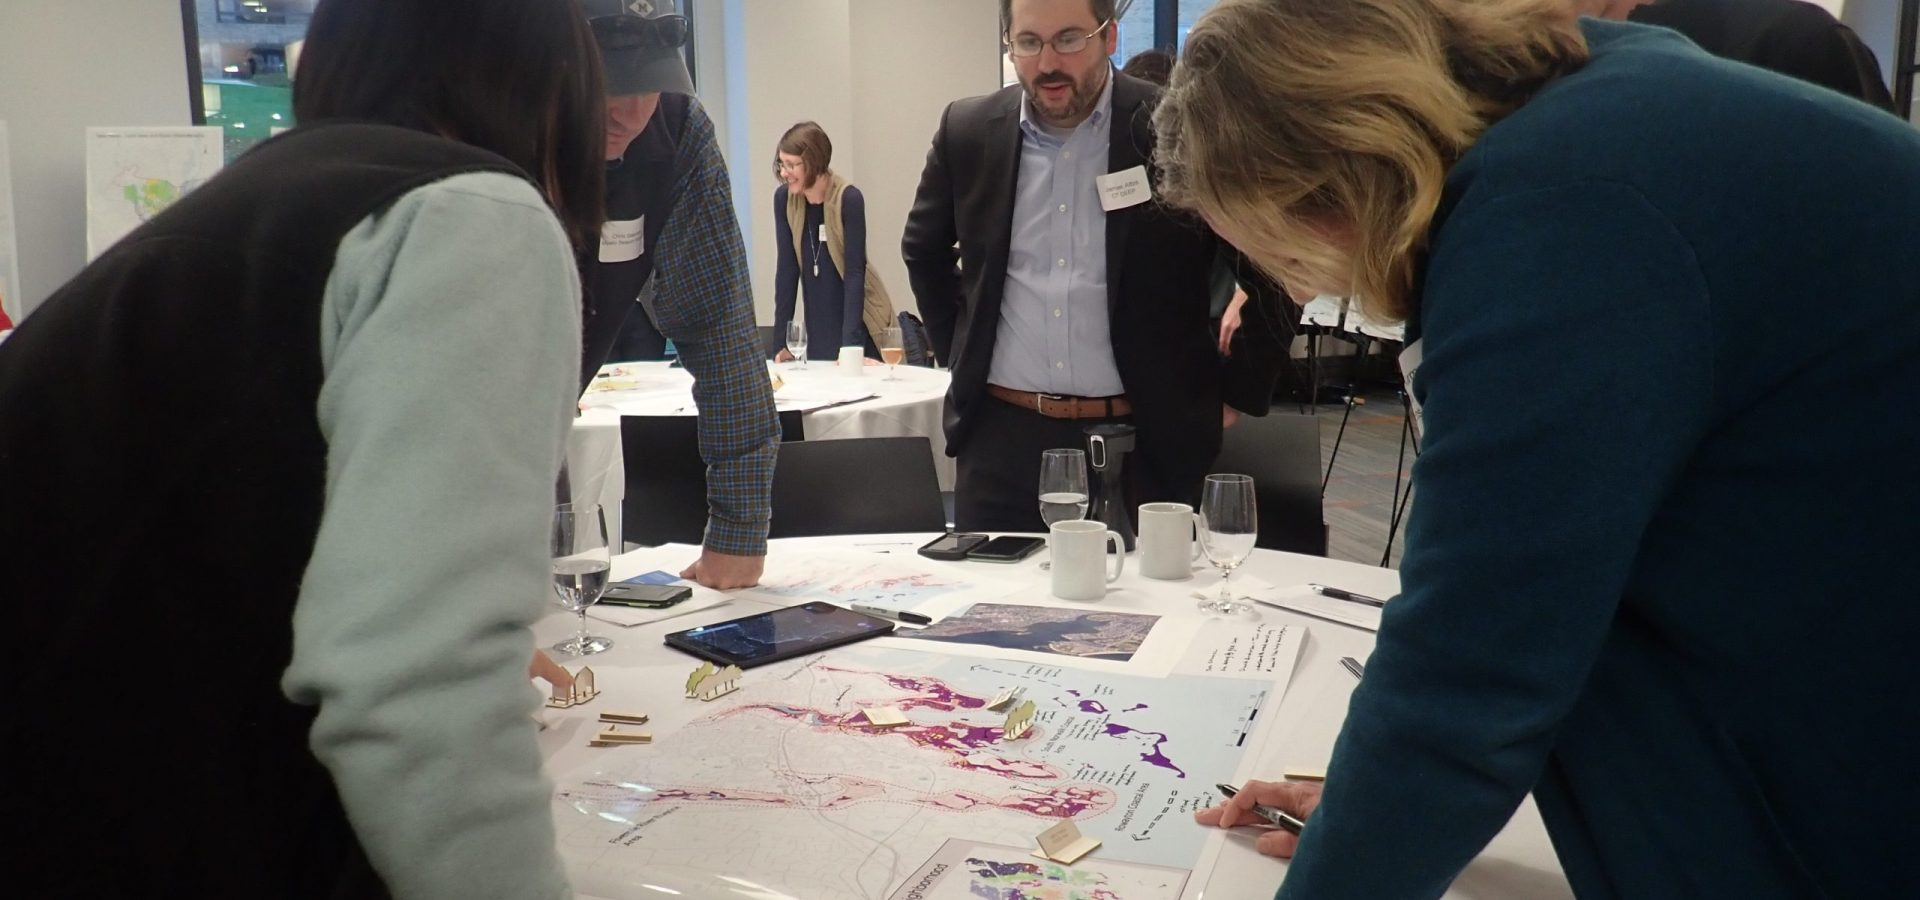 people standing around table looking at map